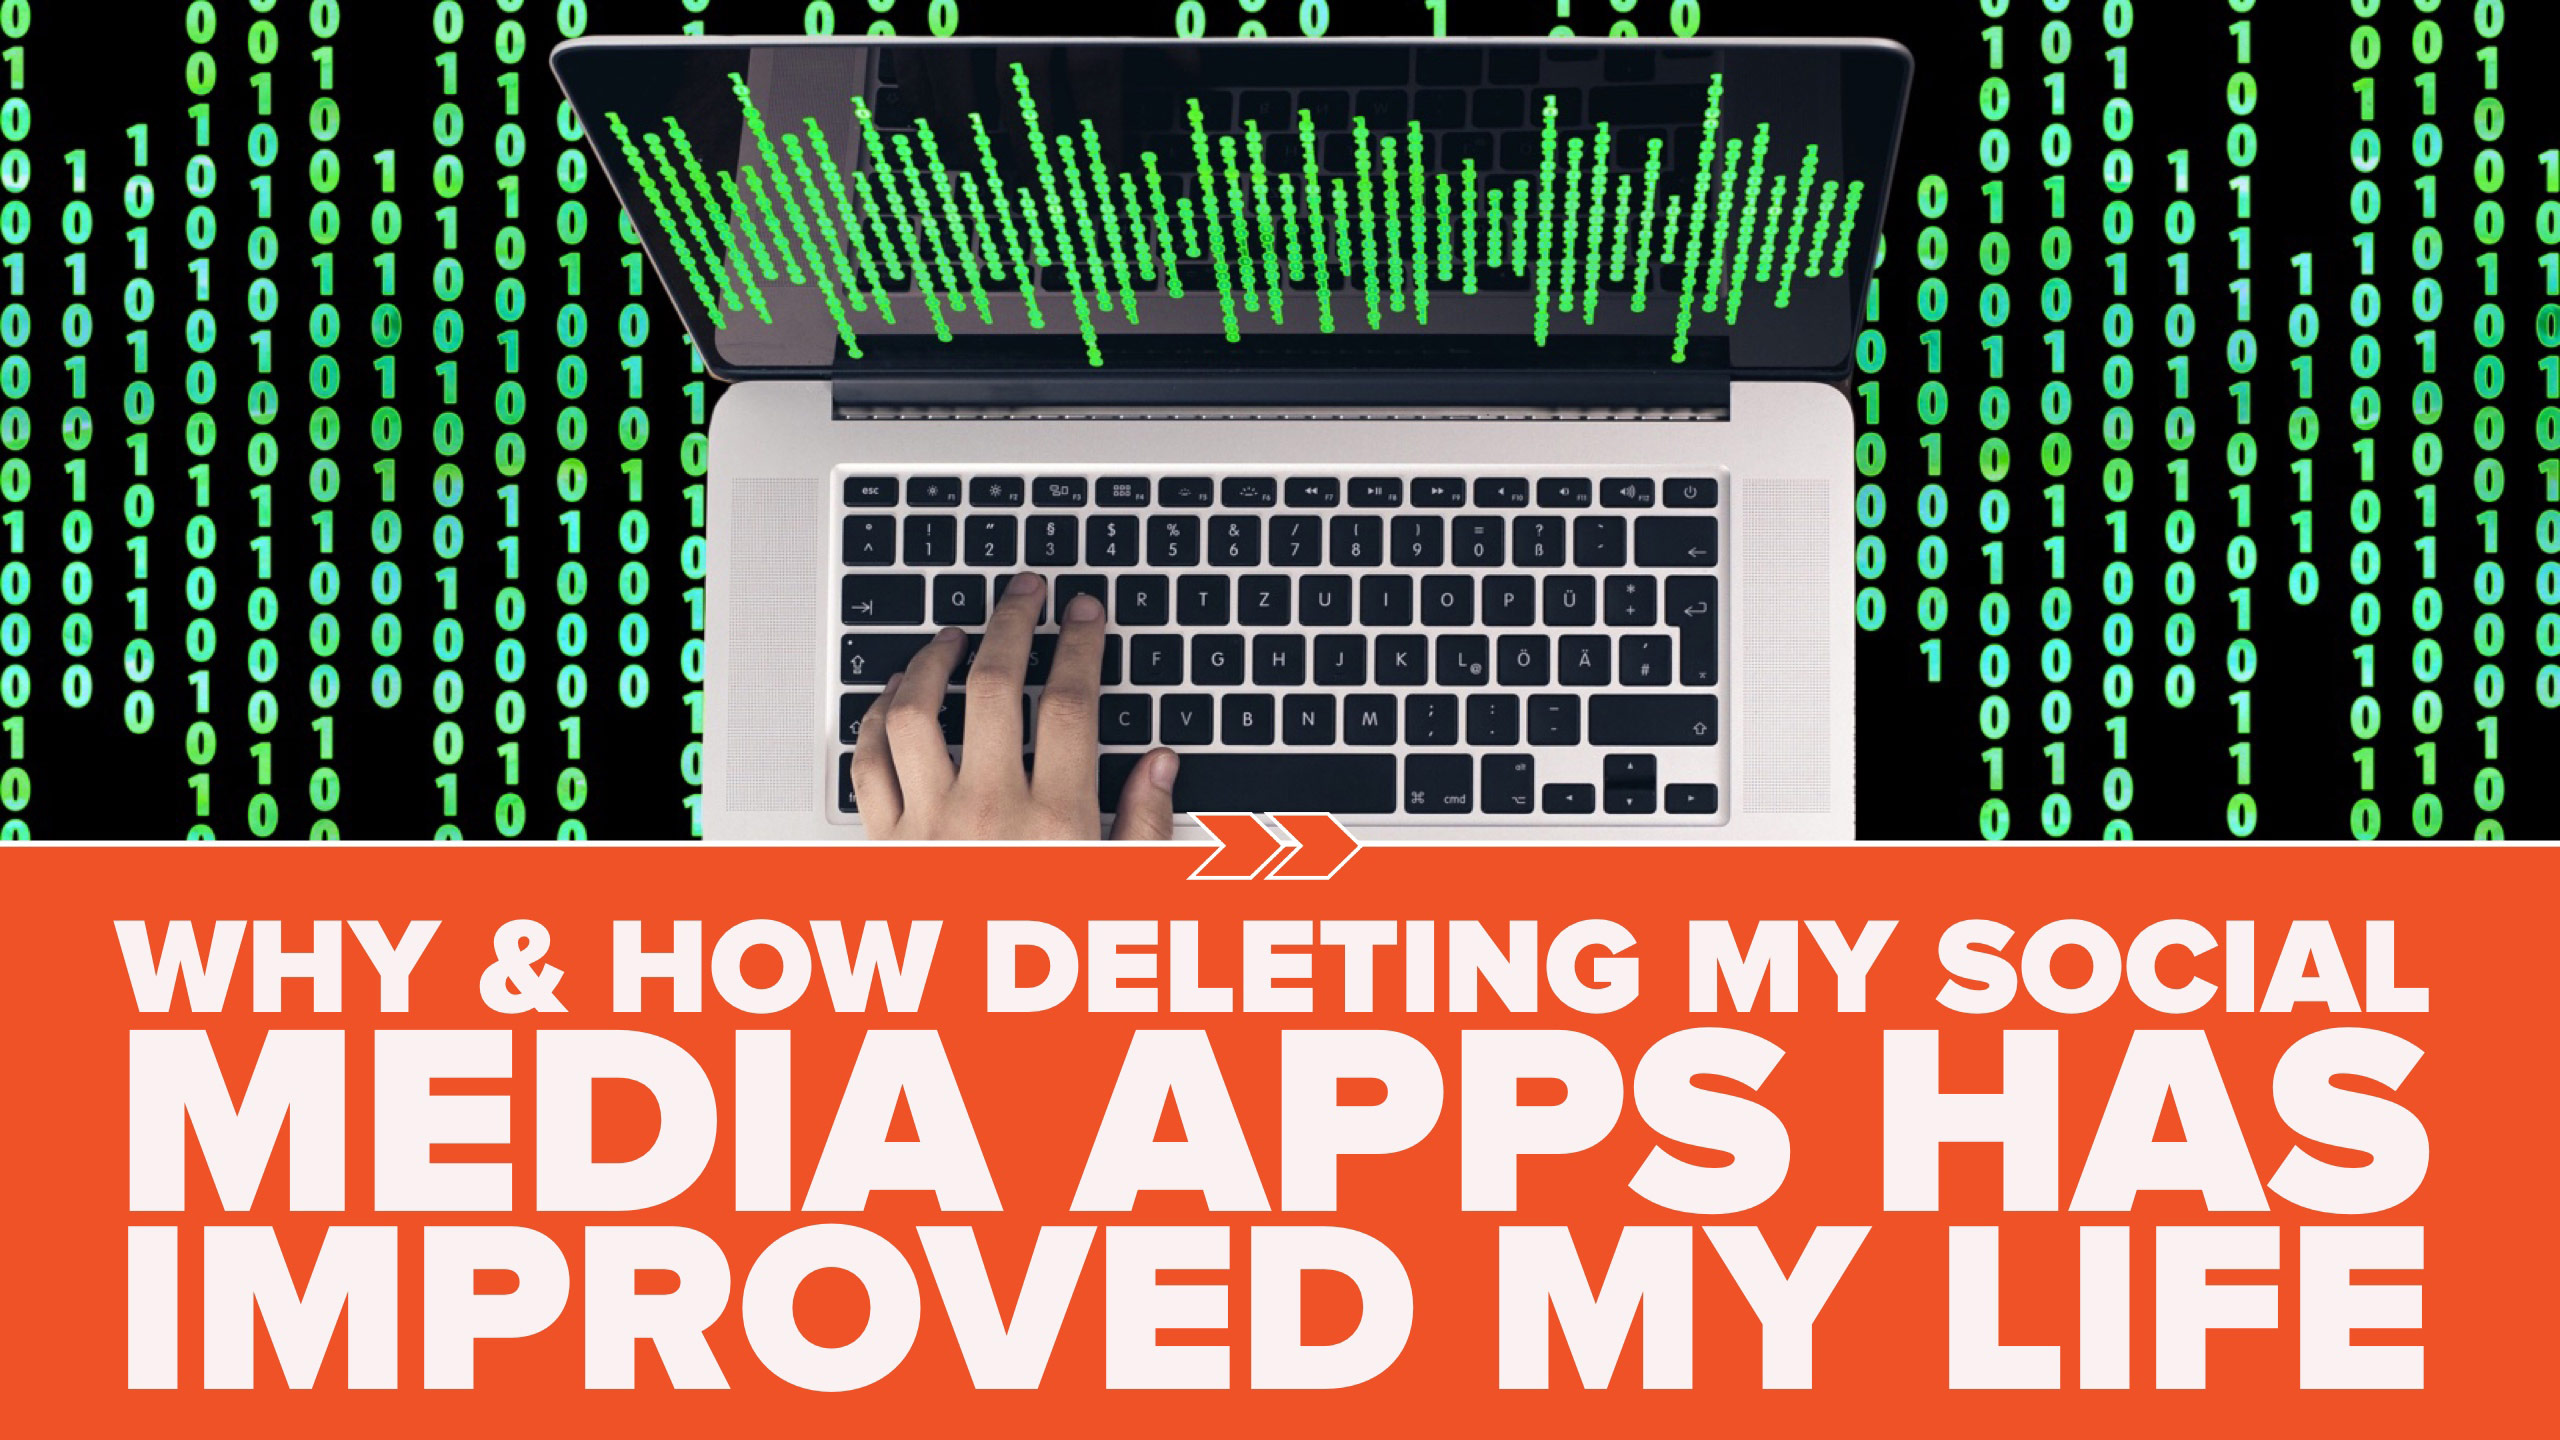 Why & How Deleting My Social Media Apps has Improved My Life